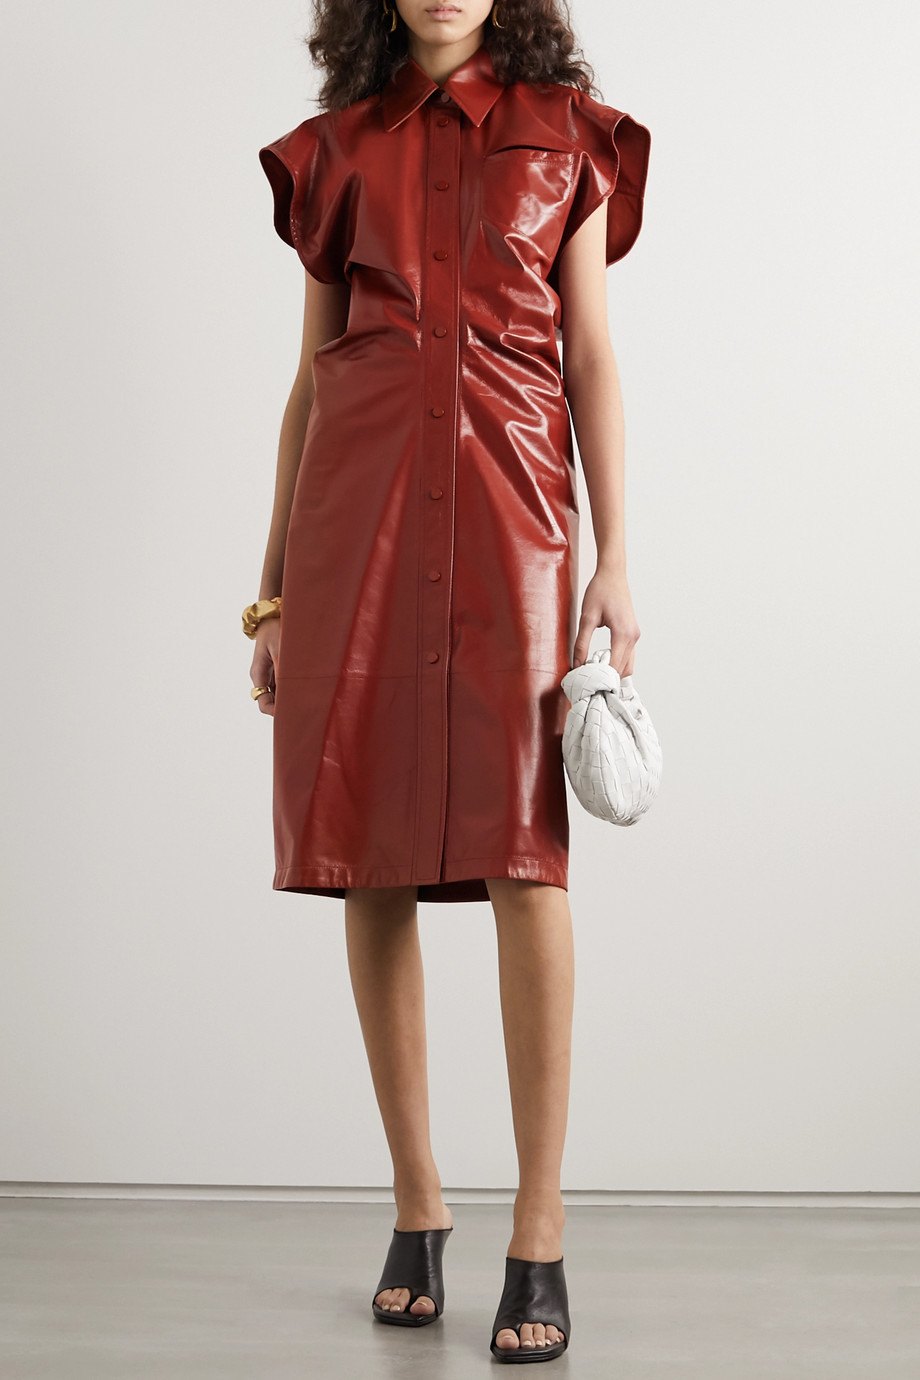 Bottega Veneta Cutout patent-leather midi dress